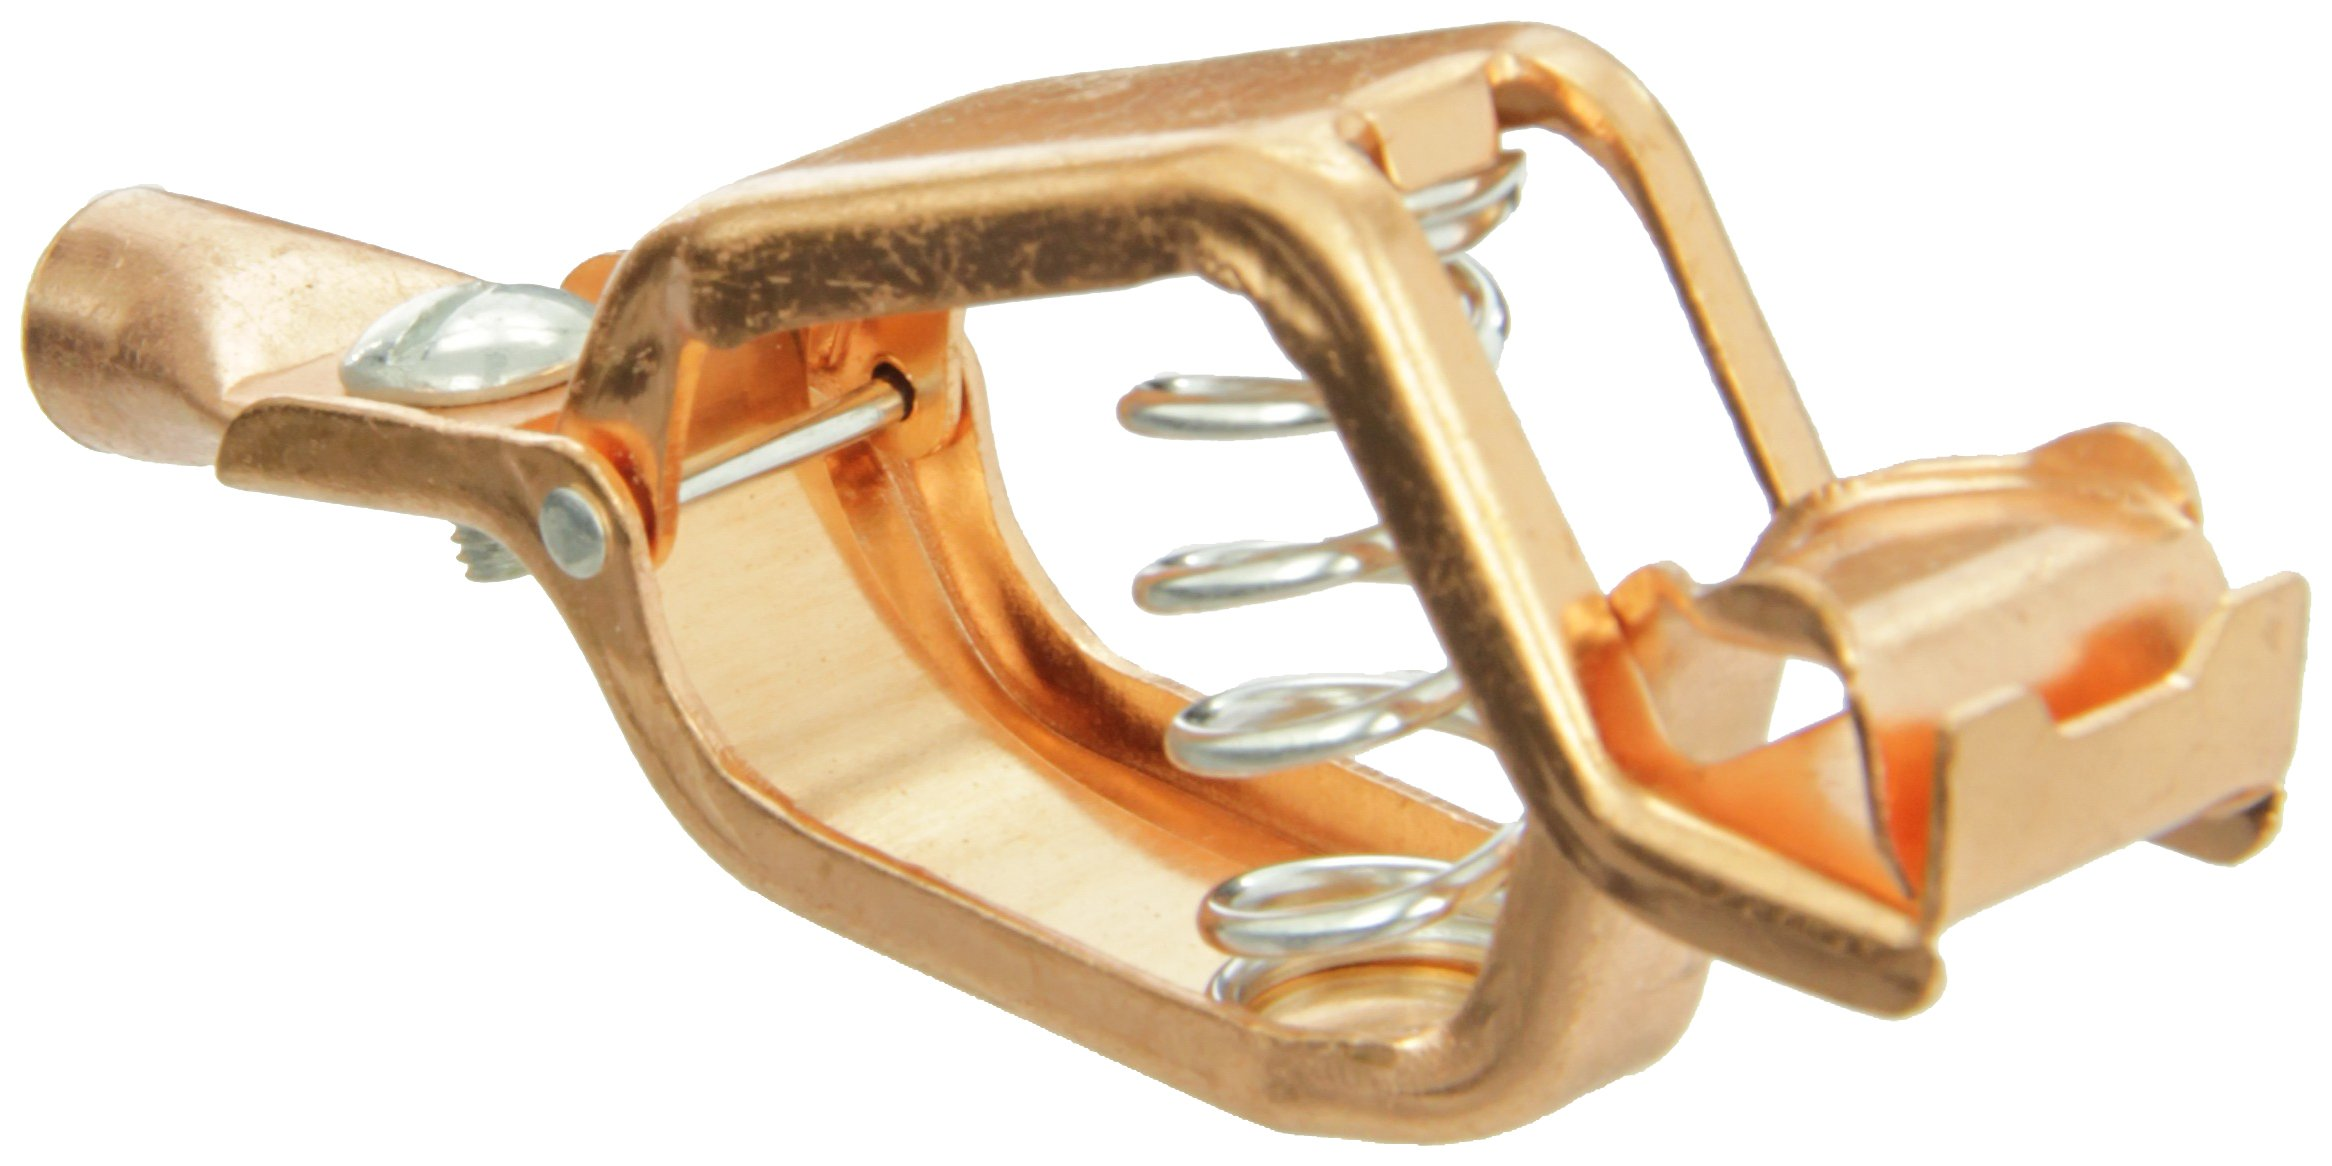 Cal Test Electronics CTM-21CPN Copper Medium Heavy Duty Clip, 100 Amp, 4-7/64'' Length (Pack of 10) by Cal Test Electronics